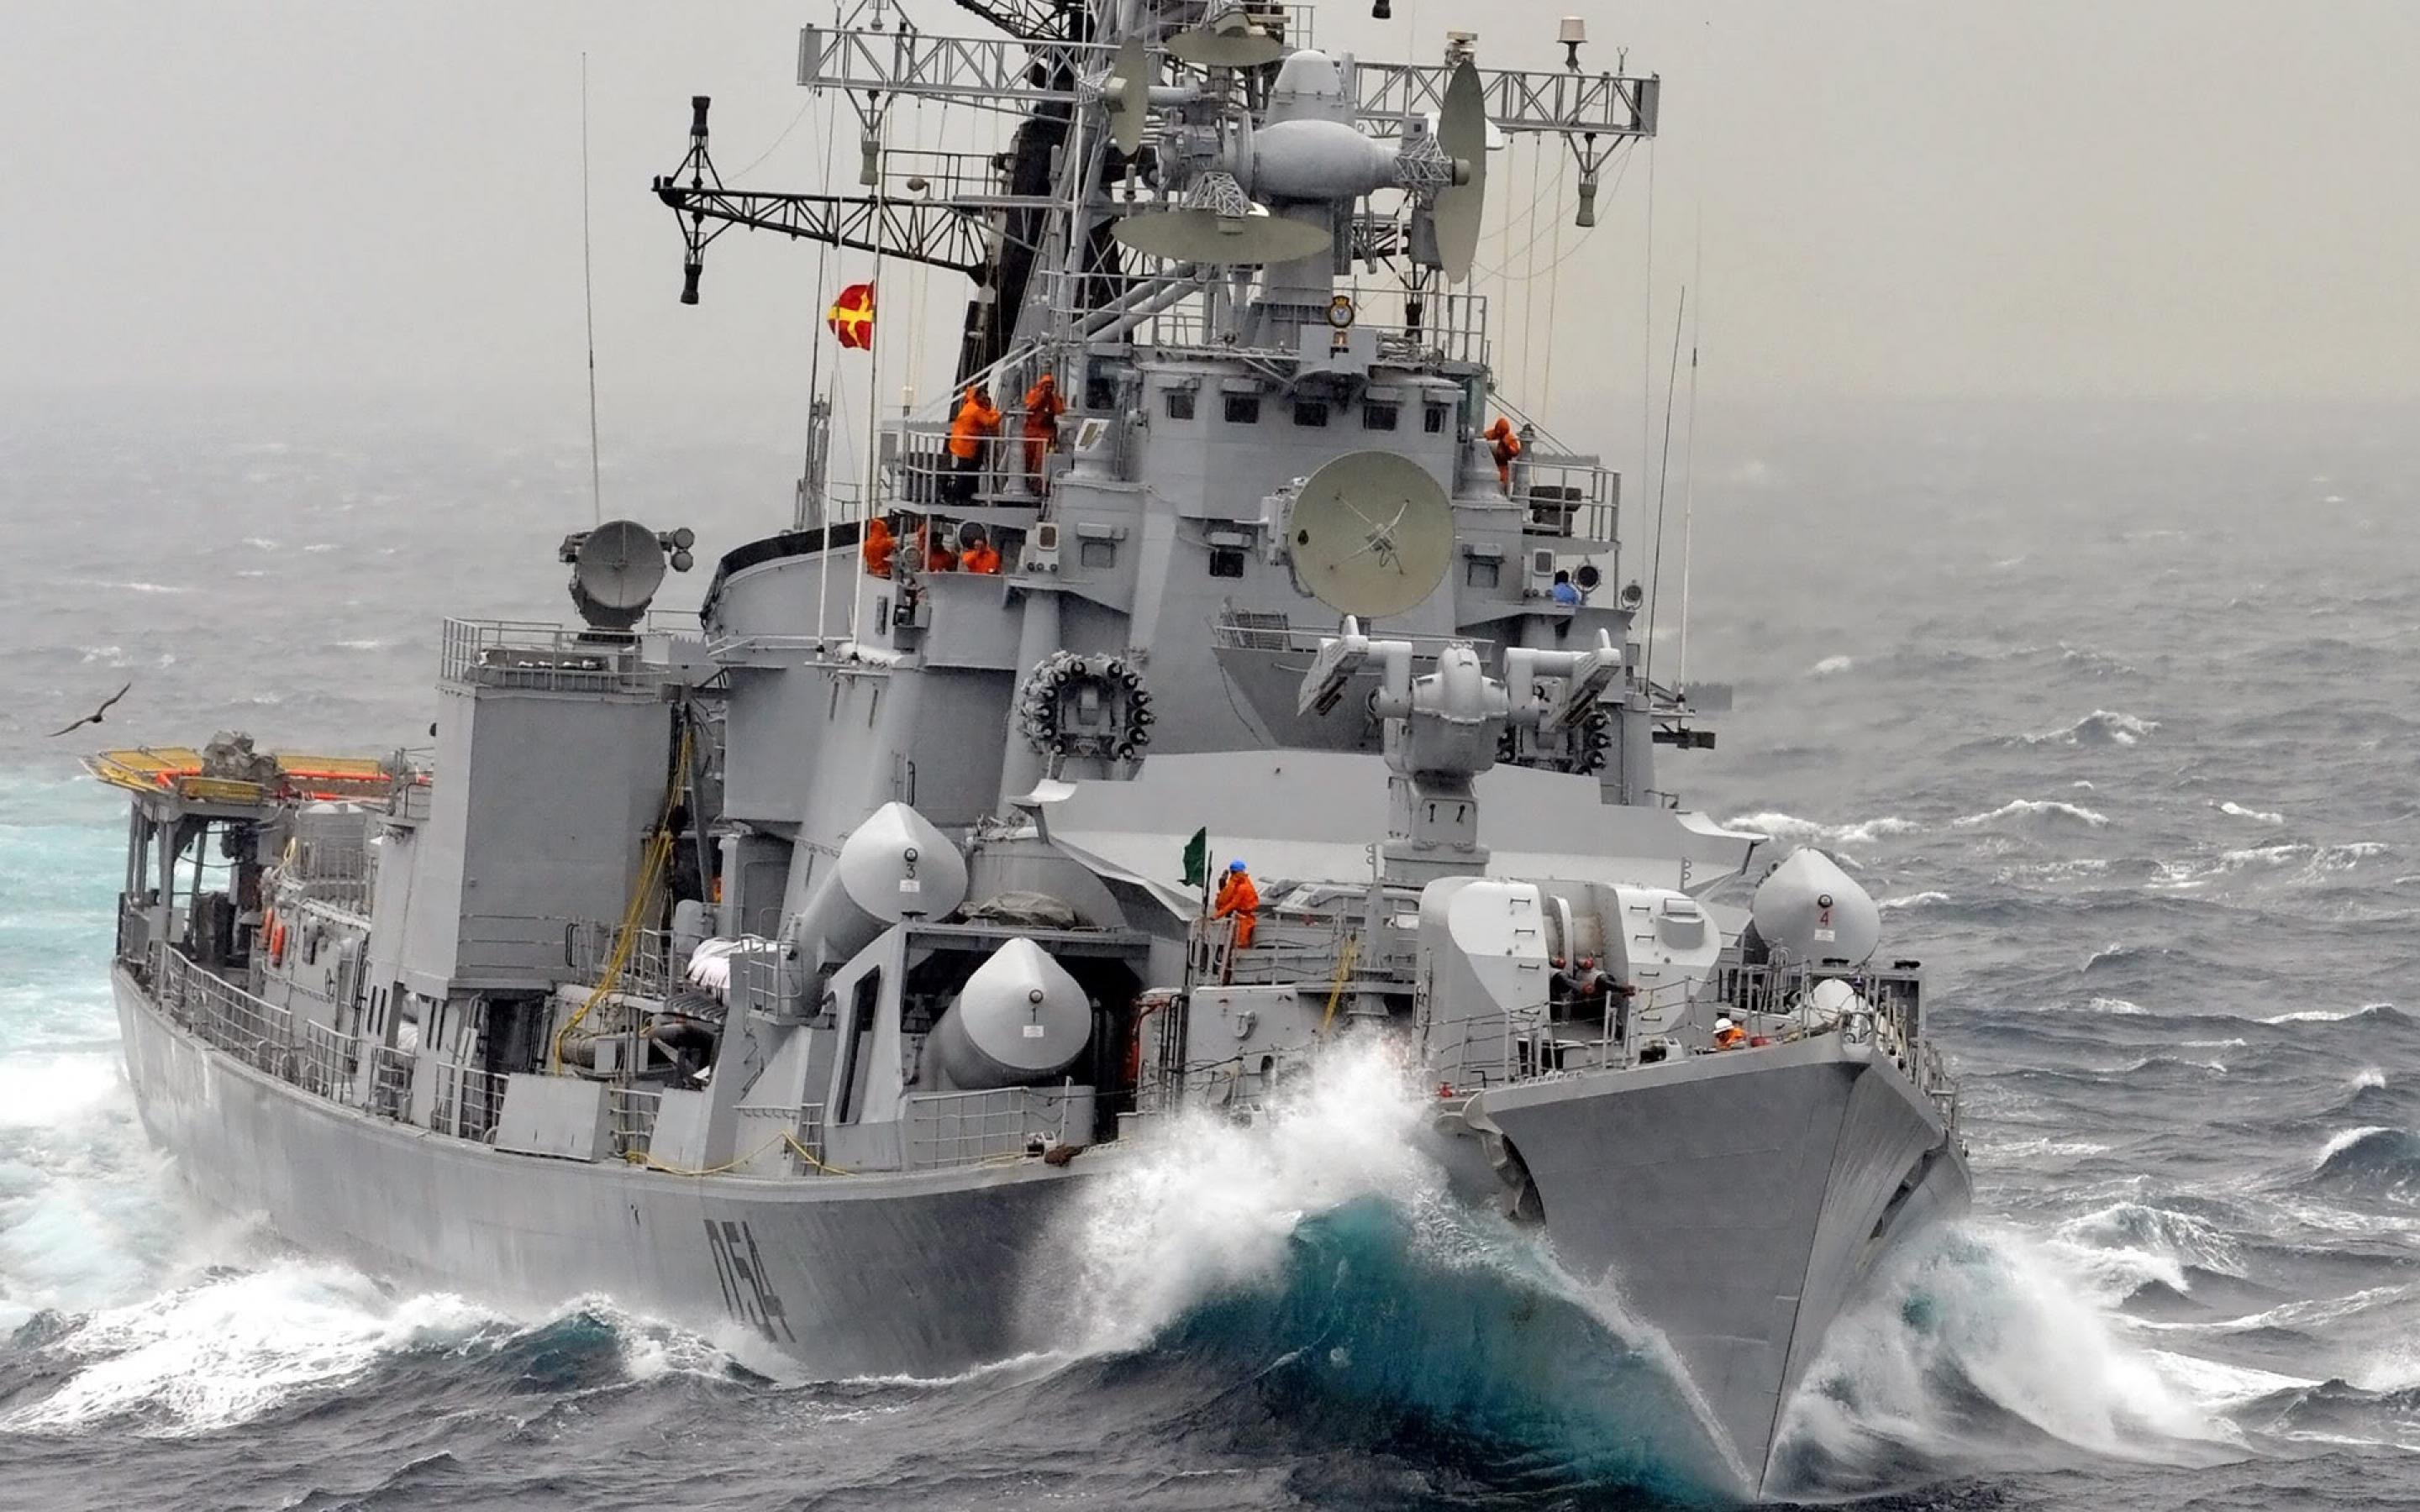 Can You Get Moving Wallpapers For Iphone X Download Hd Wallpapers Of Indian Navy Gallery